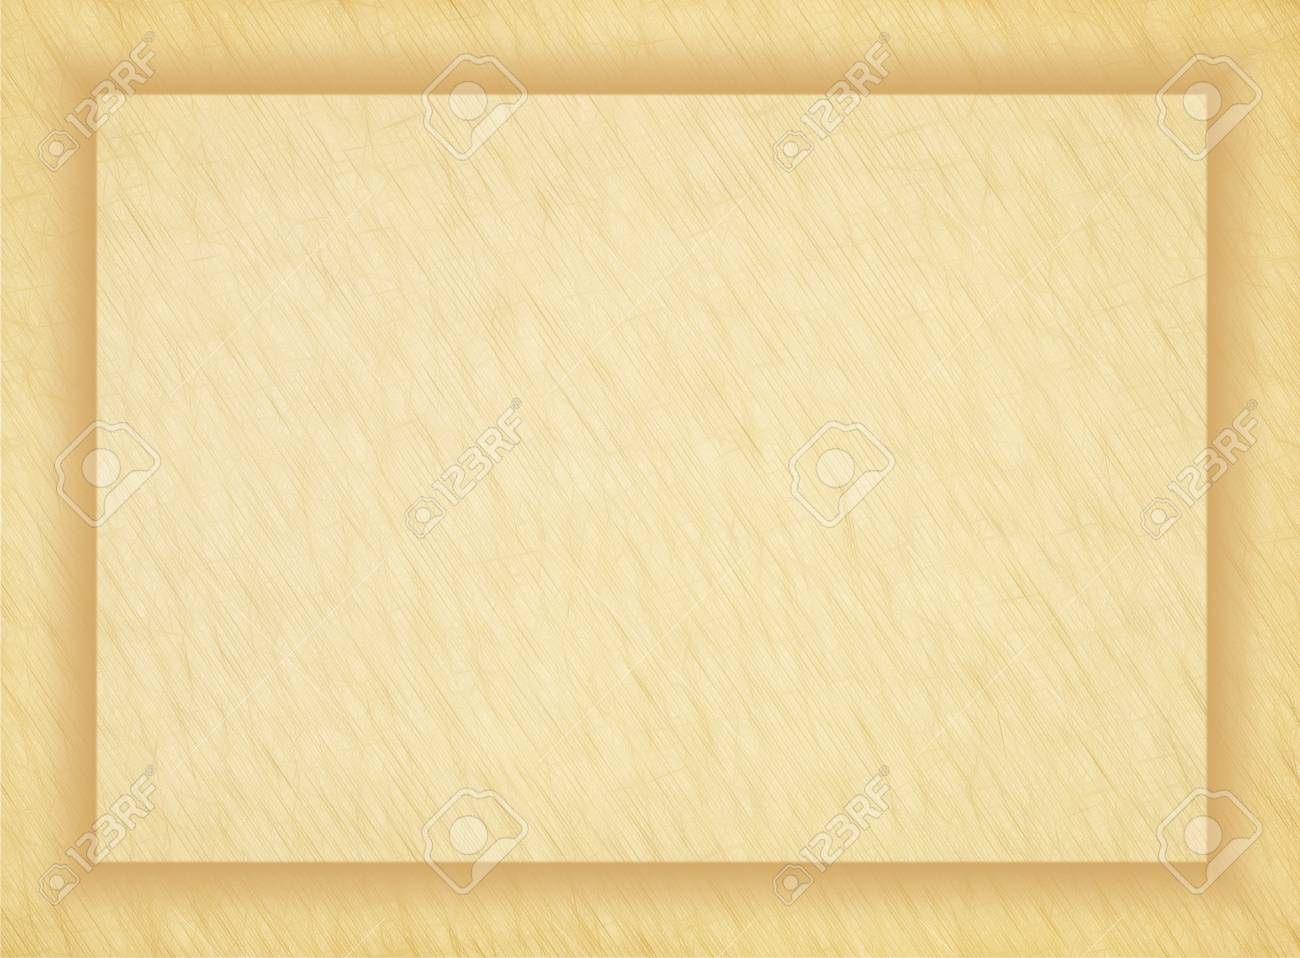 Rectangular Empty Old Papyrus Photo Frame Stock Photo, Picture And ...